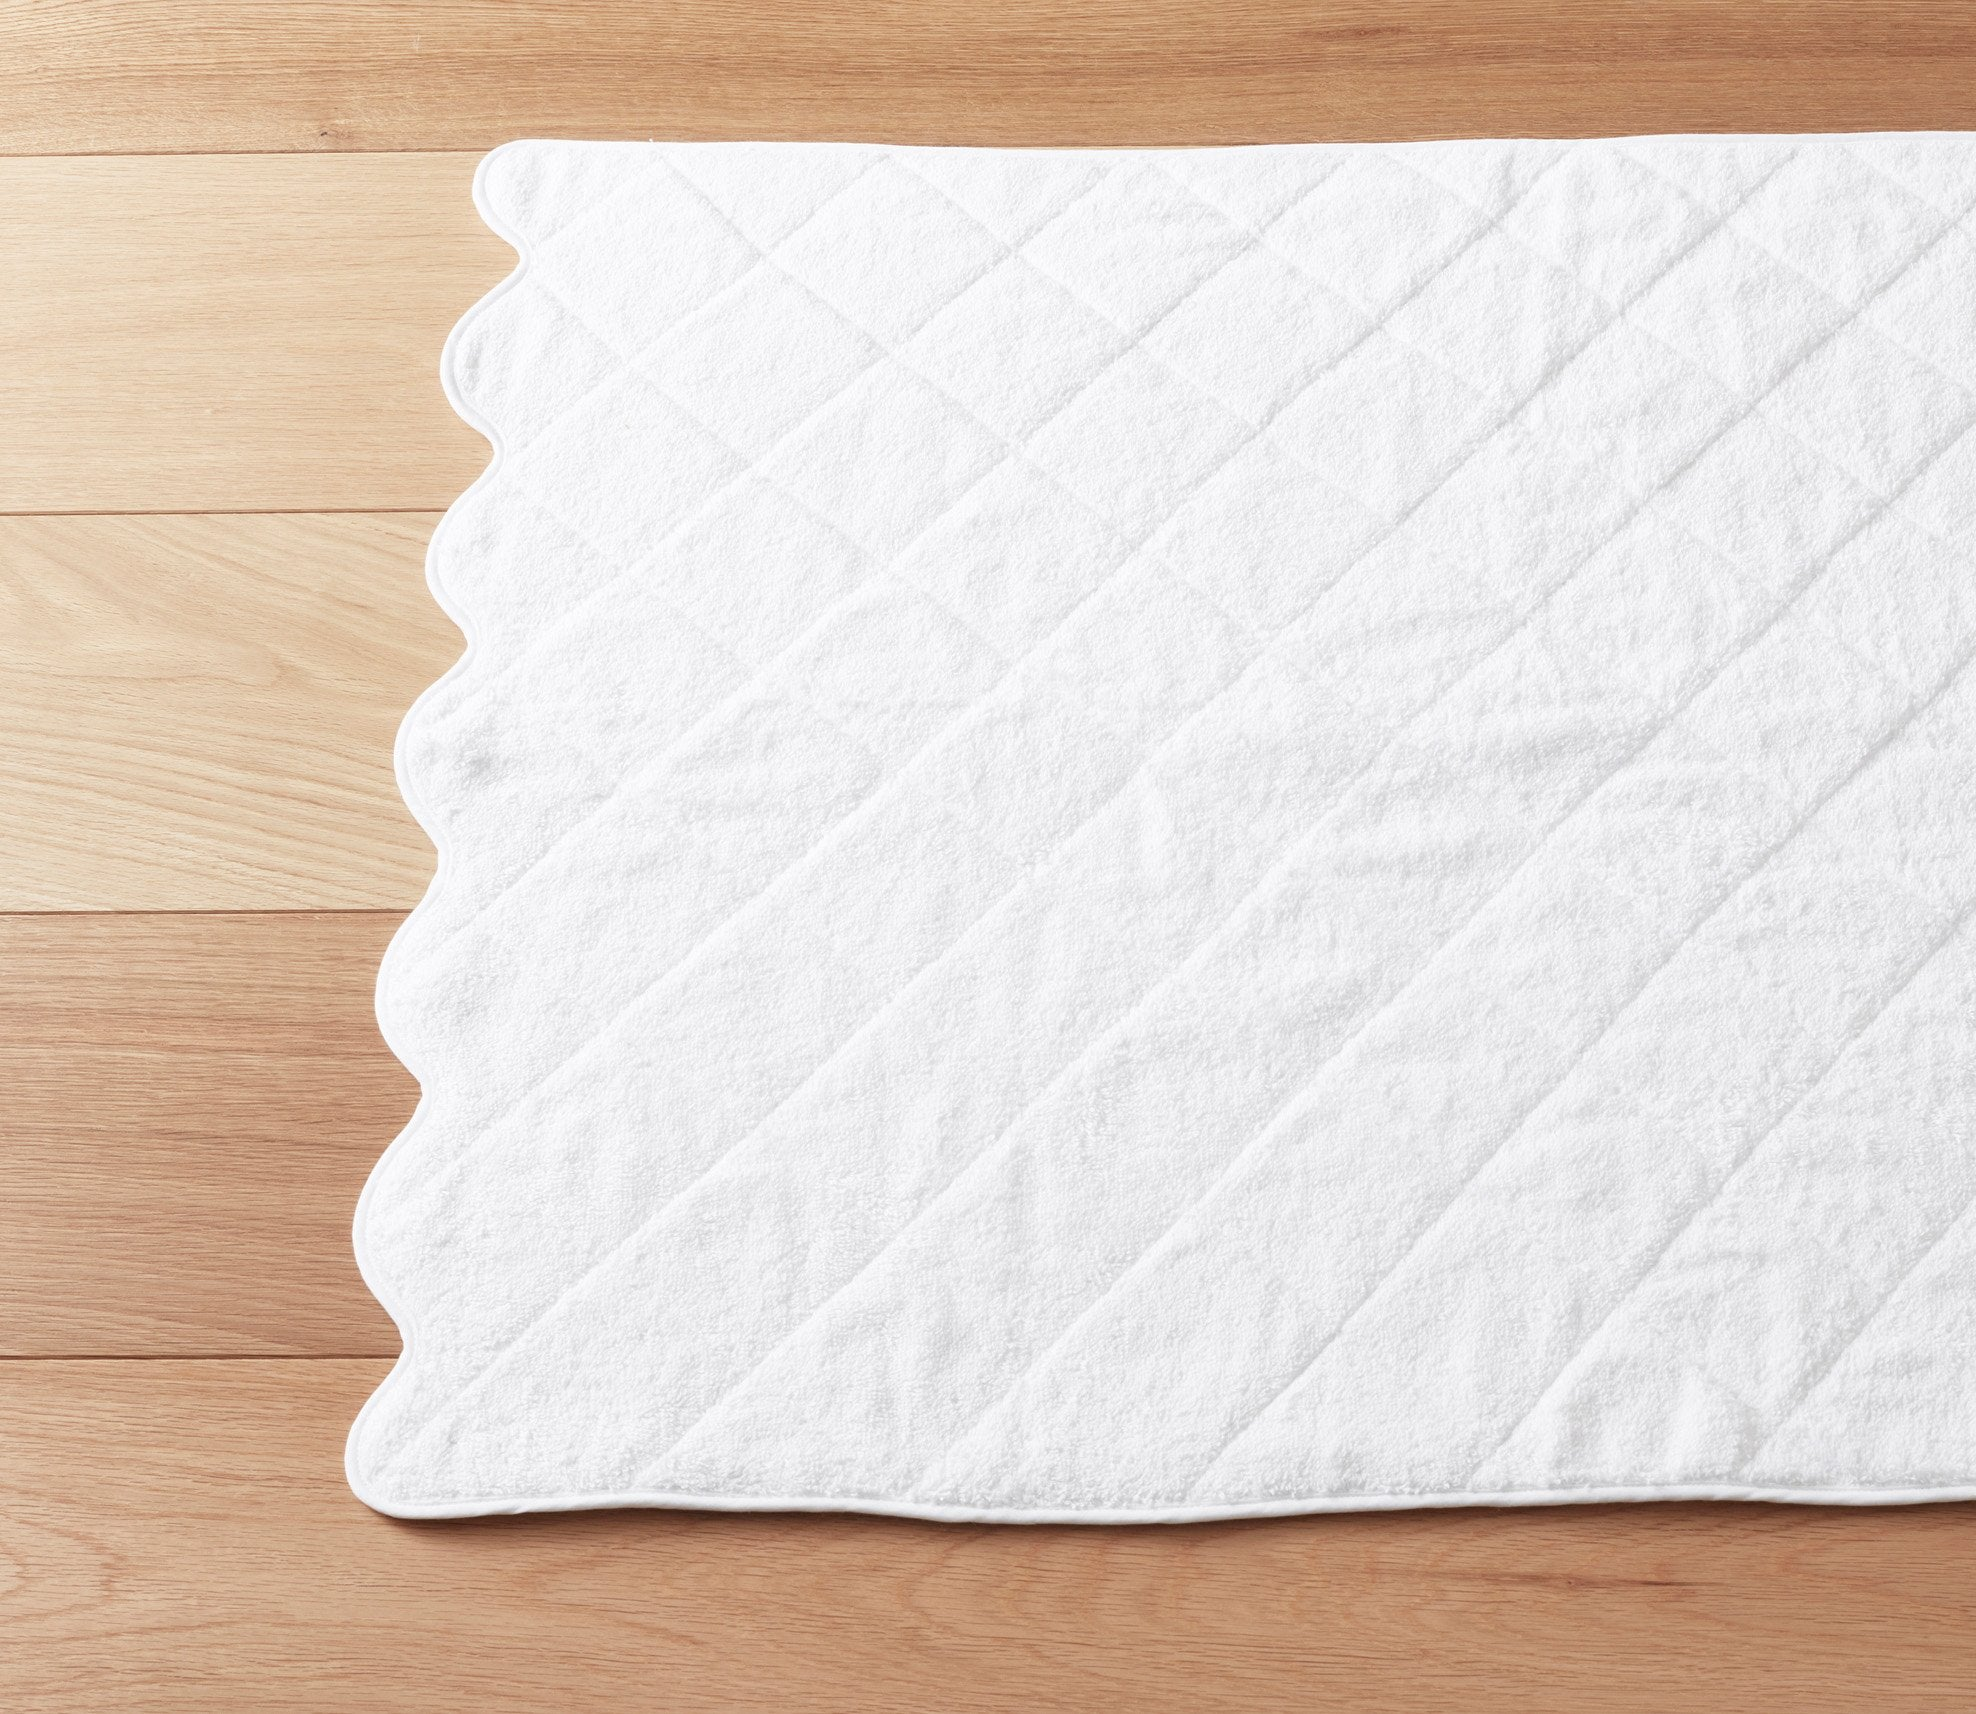 Scallop White Bath Towels Product Image 3